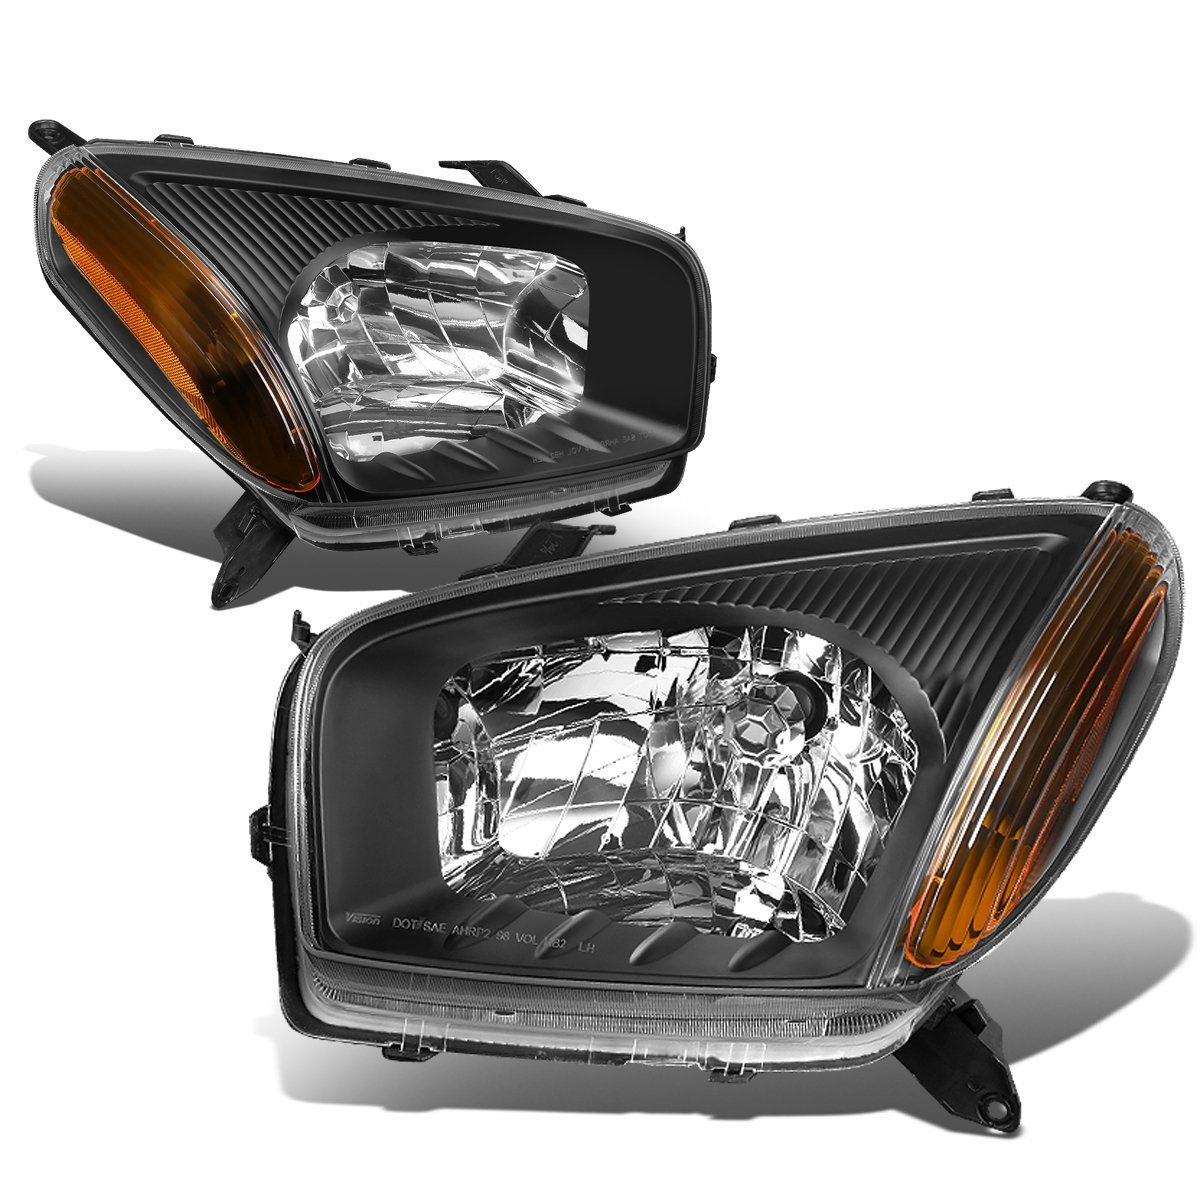 DNA MOTORING HL-OH-101-BK-AM Headlight Assembly Driver And Passenger Side